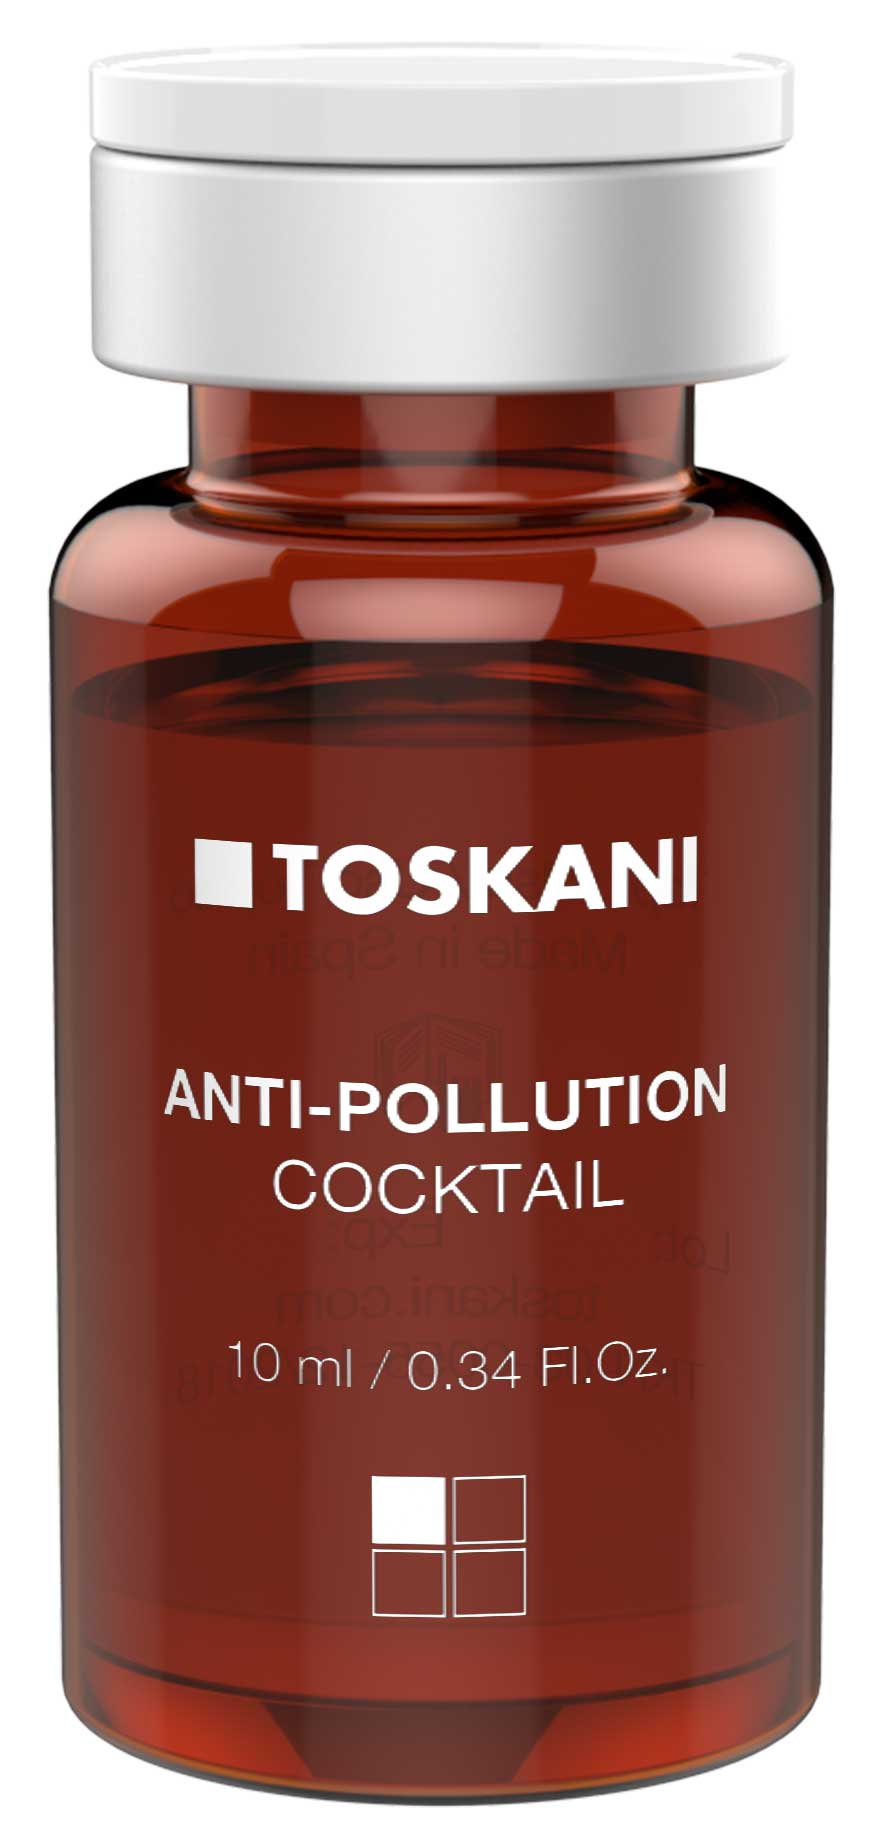 Anti-pollution Cocktail.